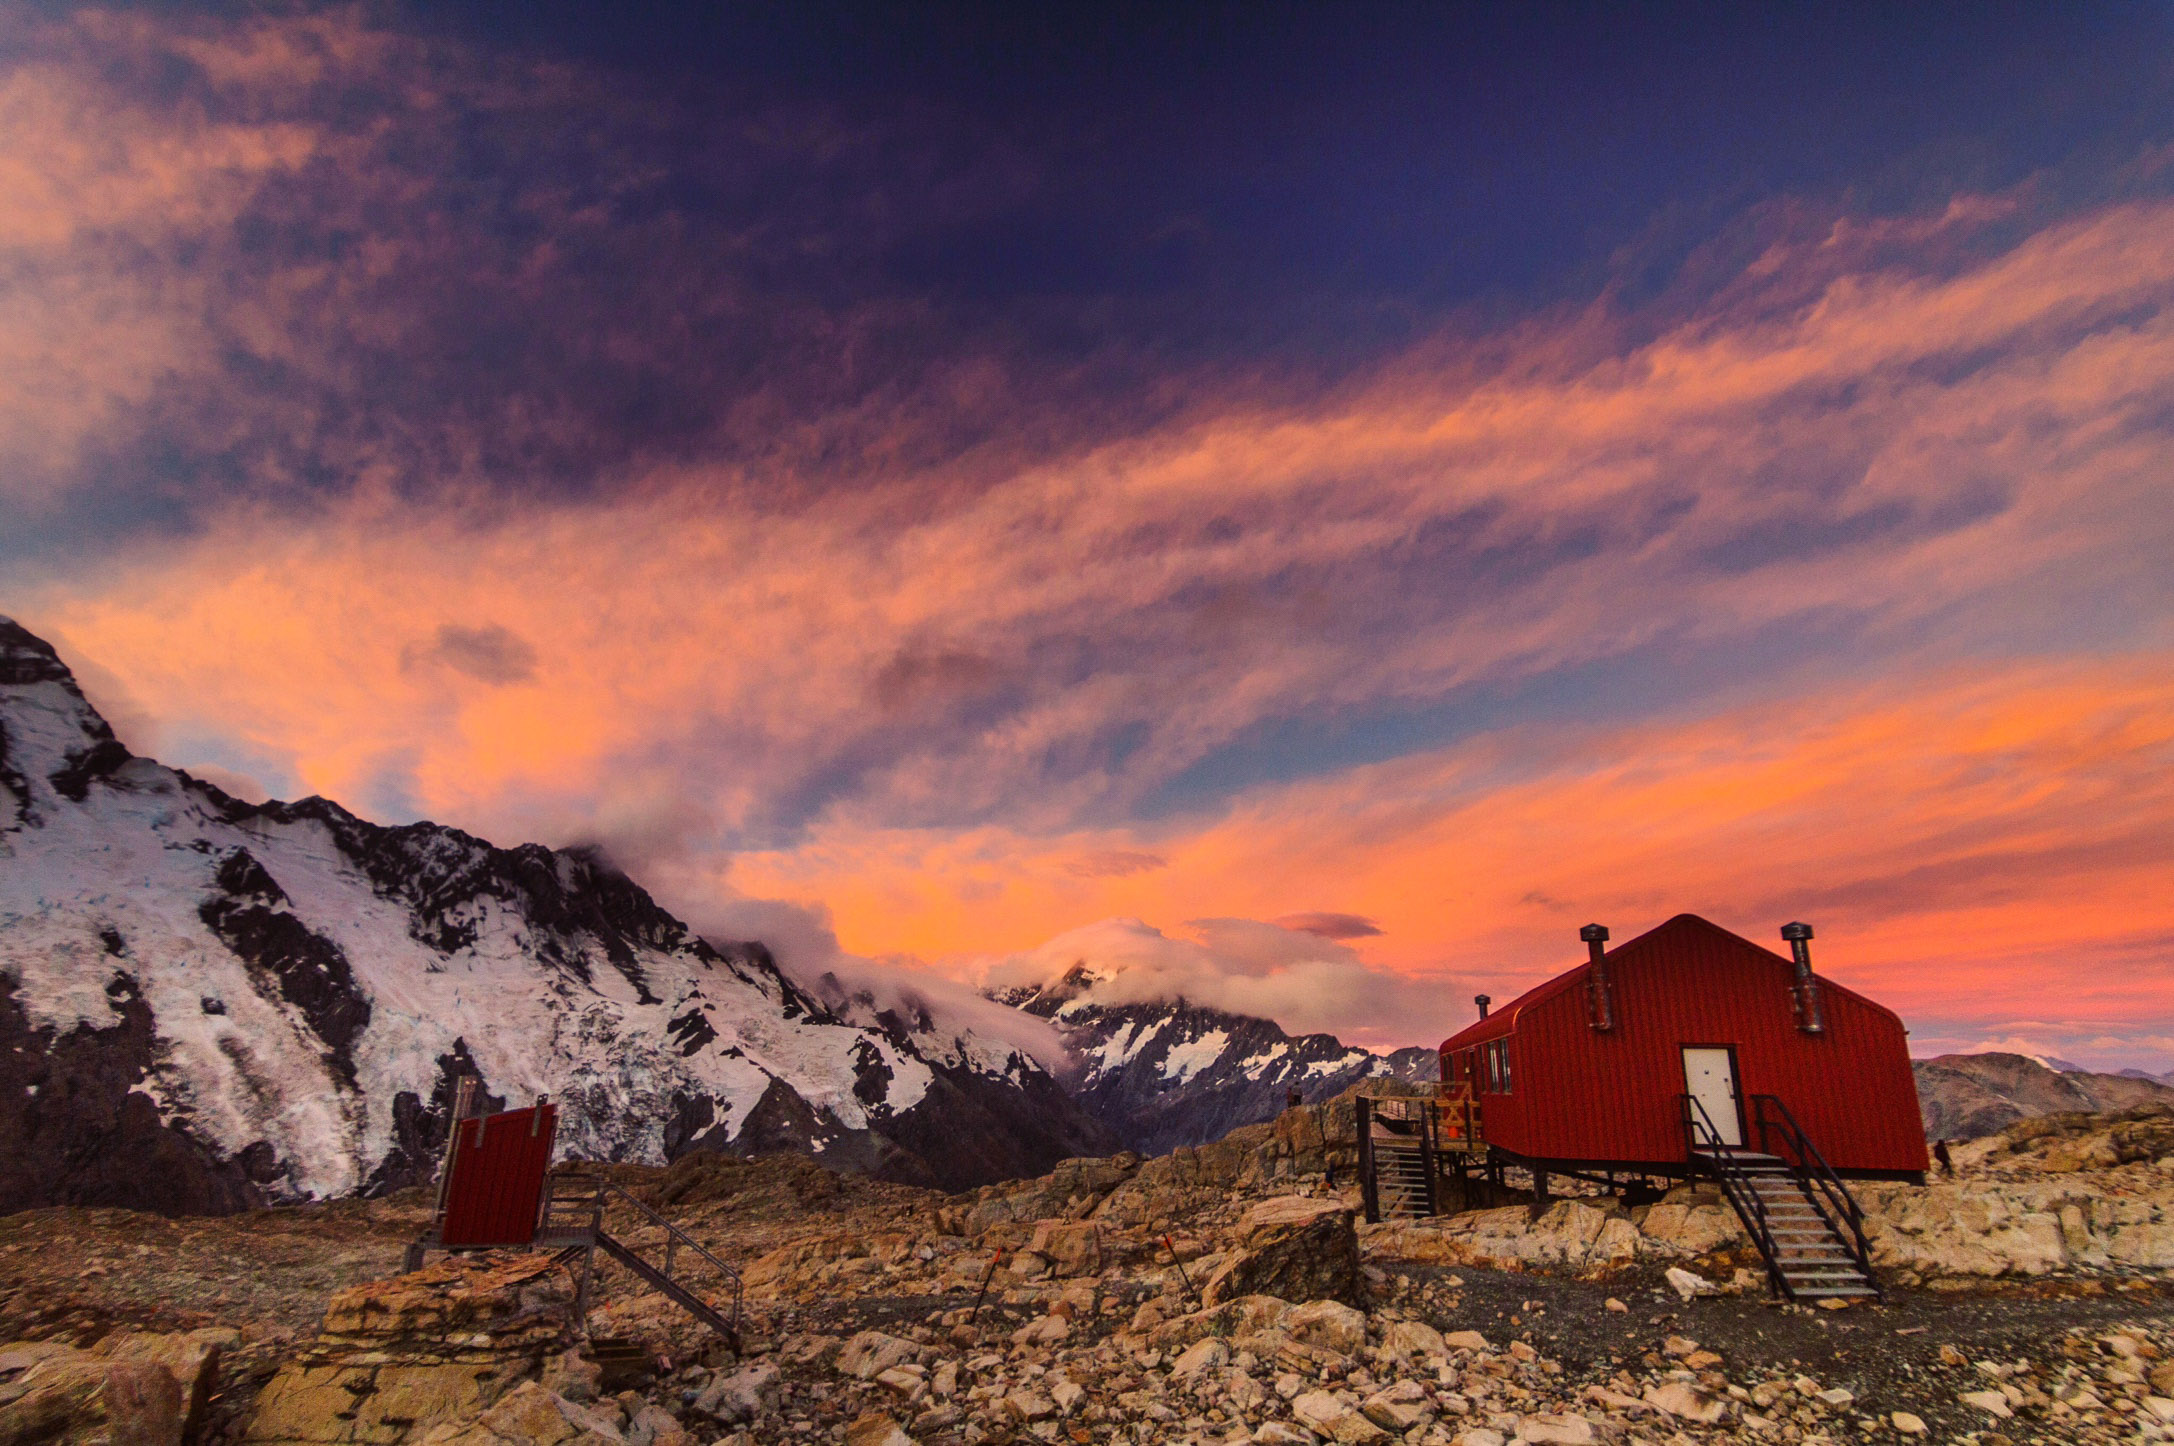 Mt Cook Hooker Valley Track, Mueller Hut, Mount Cook New Zealand (15 of 15).jpg